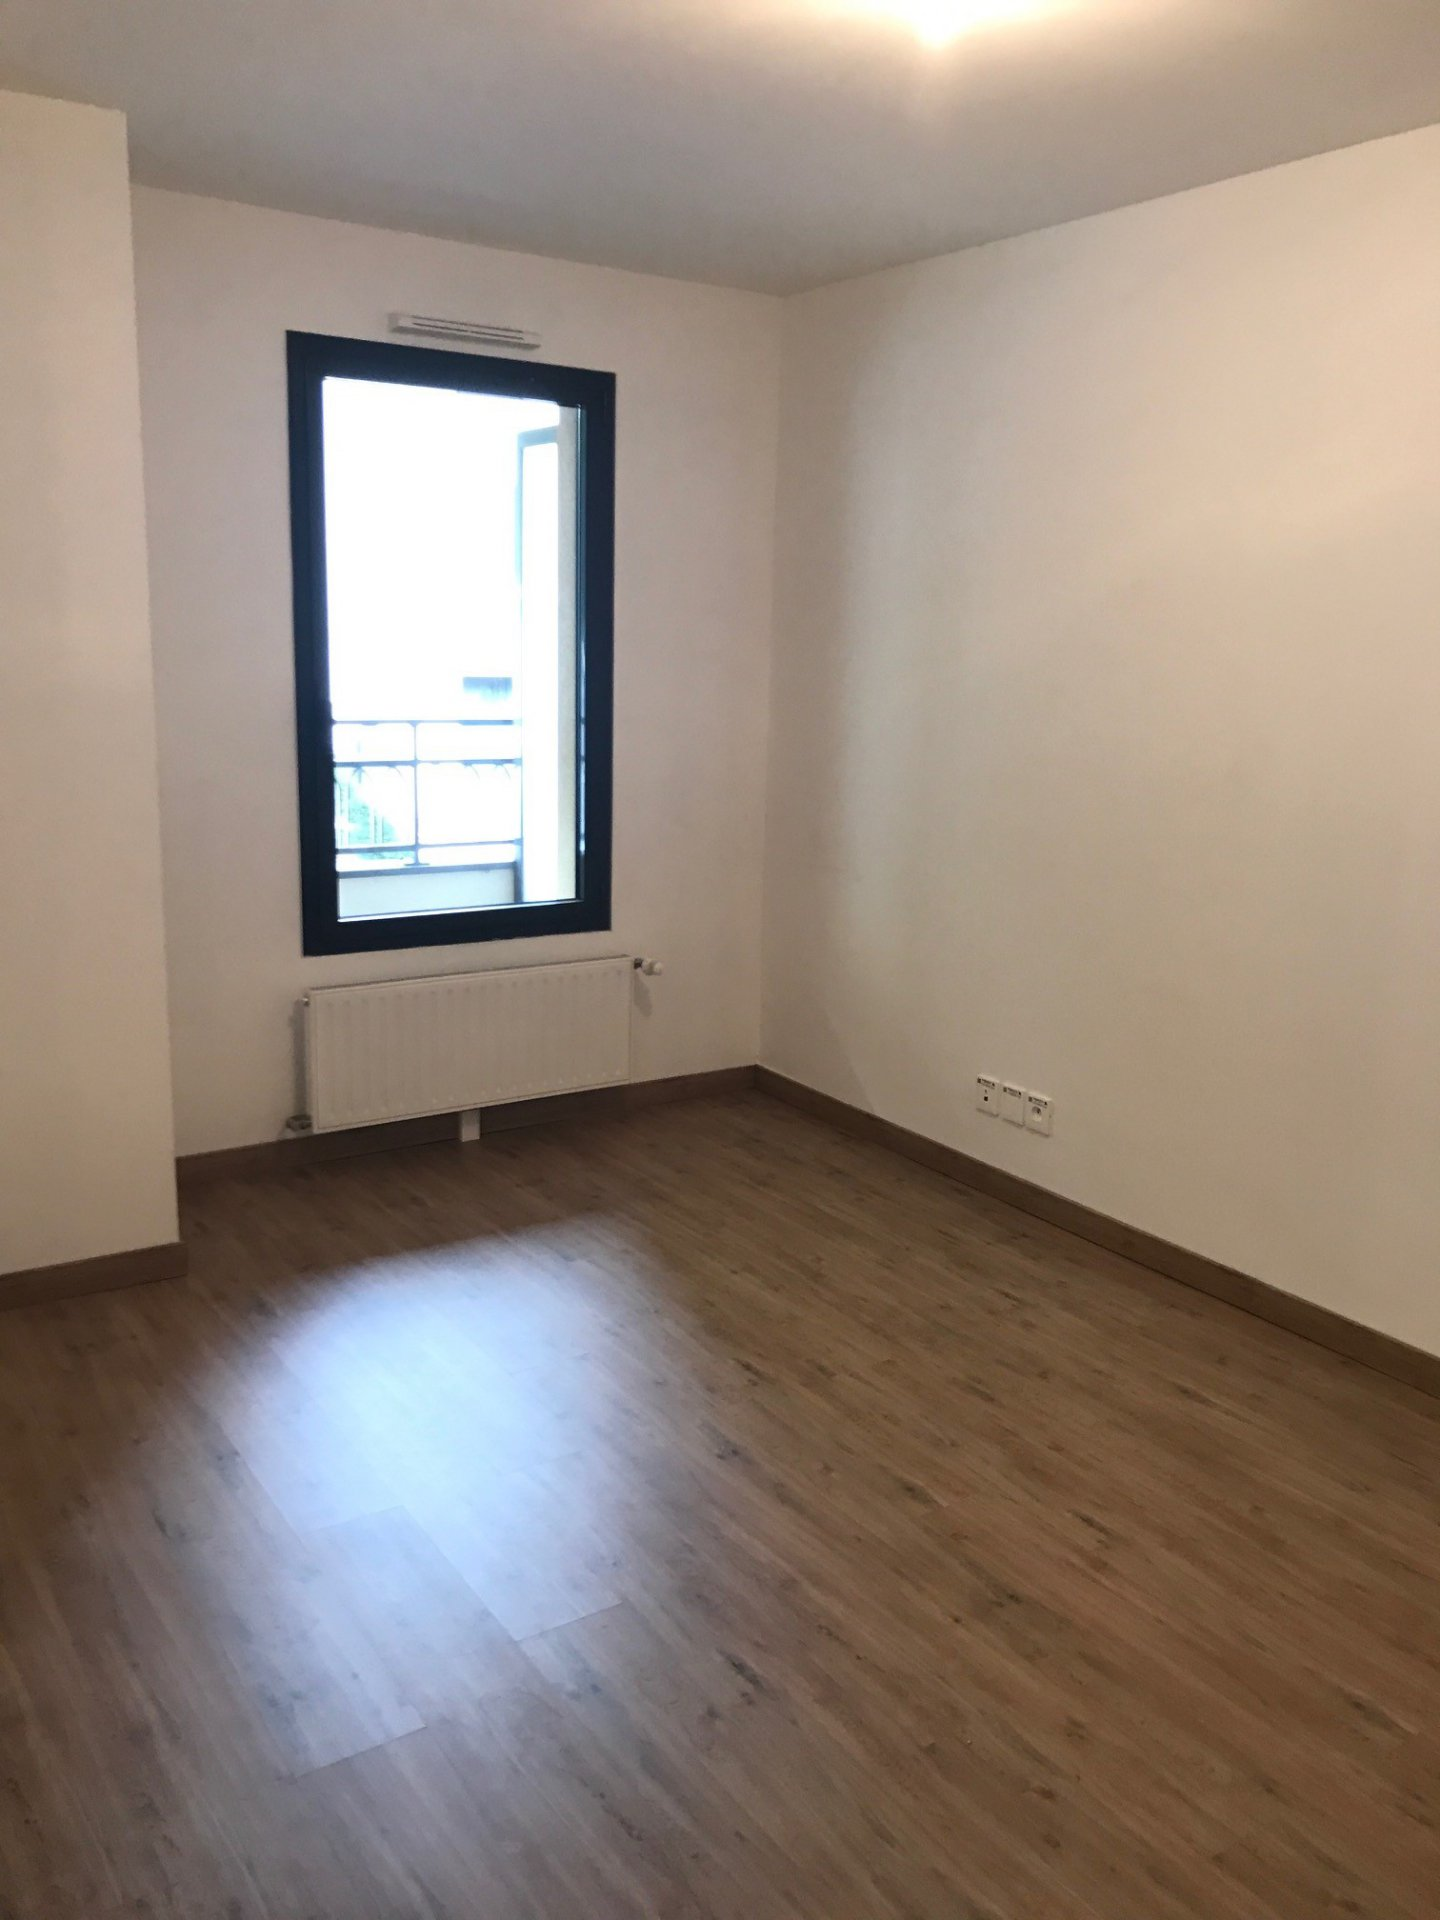 LOCATION APPARTEMENT SAINT-GALMIER